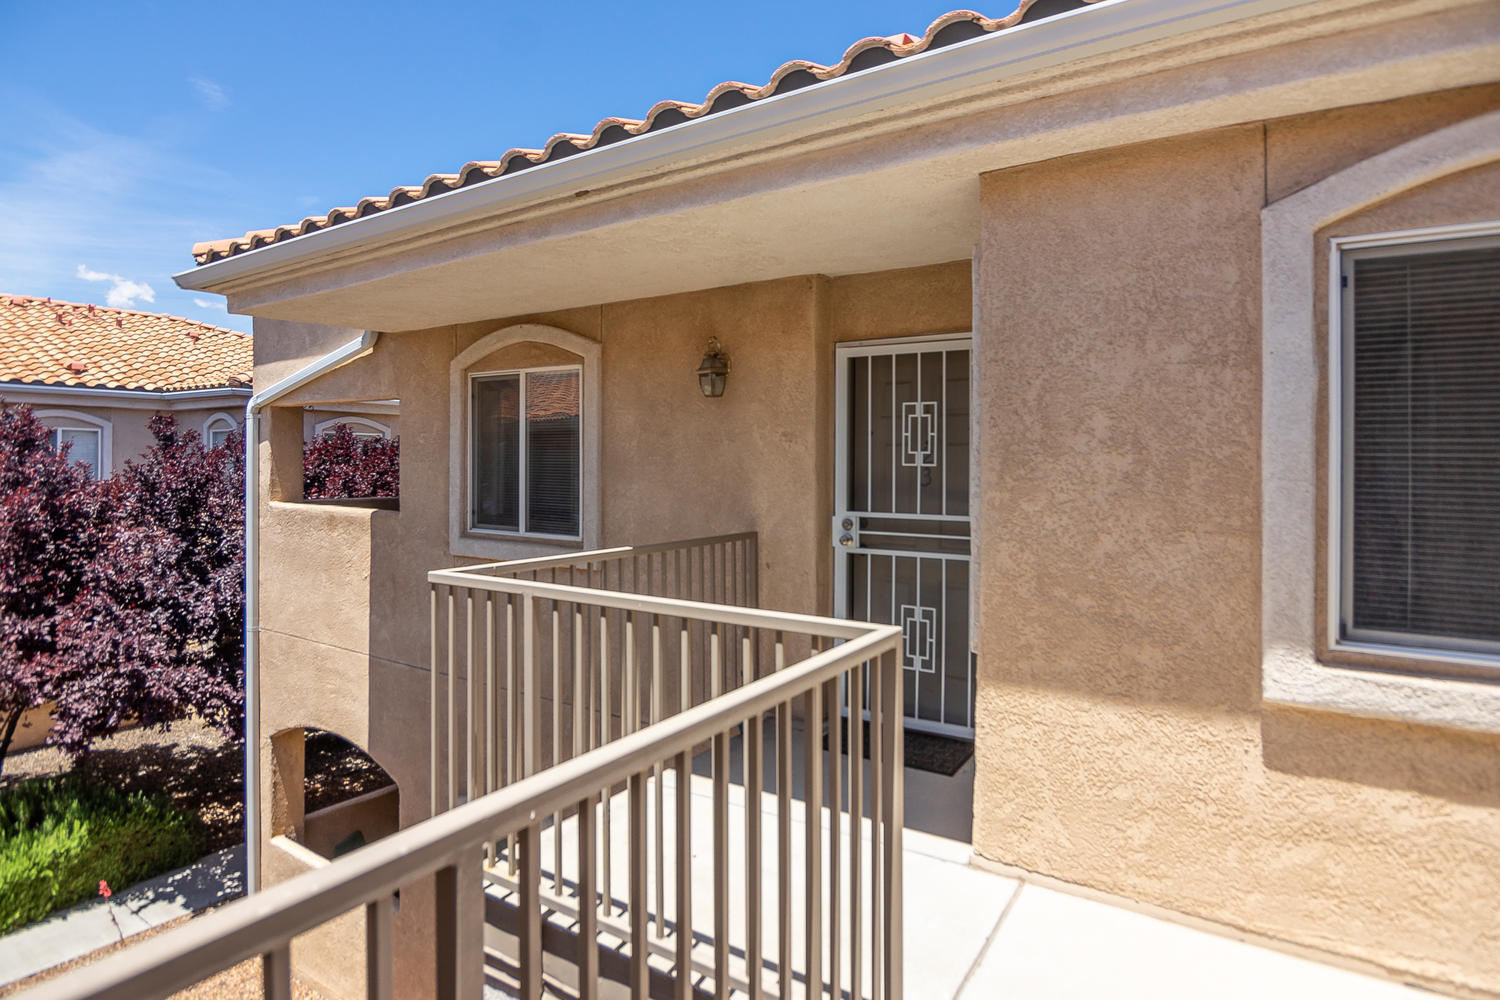 Charming, bright & spacious condo ideally located in the popular Vista Del Norte community in the Rancho Mirage condominiums!  Fall in love w/this 2 bedroom & 2 full bathroom gem; plus a 1 car detached garage! Delightful kitchen w/gas stove, dishwasher, microwave and a breakfast bar which opens to the lovely living area! An atrium door opens to the covered balcony, perfect for relaxing or entertaining during the summer! Wide hallway leads to the bedrooms. Master bedroom offers a walk-in closet & large master bathroom w/tile floor & shower/tub combined! Laundry room w/storage shelves! Enjoy the ease & comfort of this gated community, featuring clubhouse, 2 pools, & exercise room. Centrally located w/easy access to I-25, Paseo Del Norte, restaurants & shopping! New dishwasher... more!